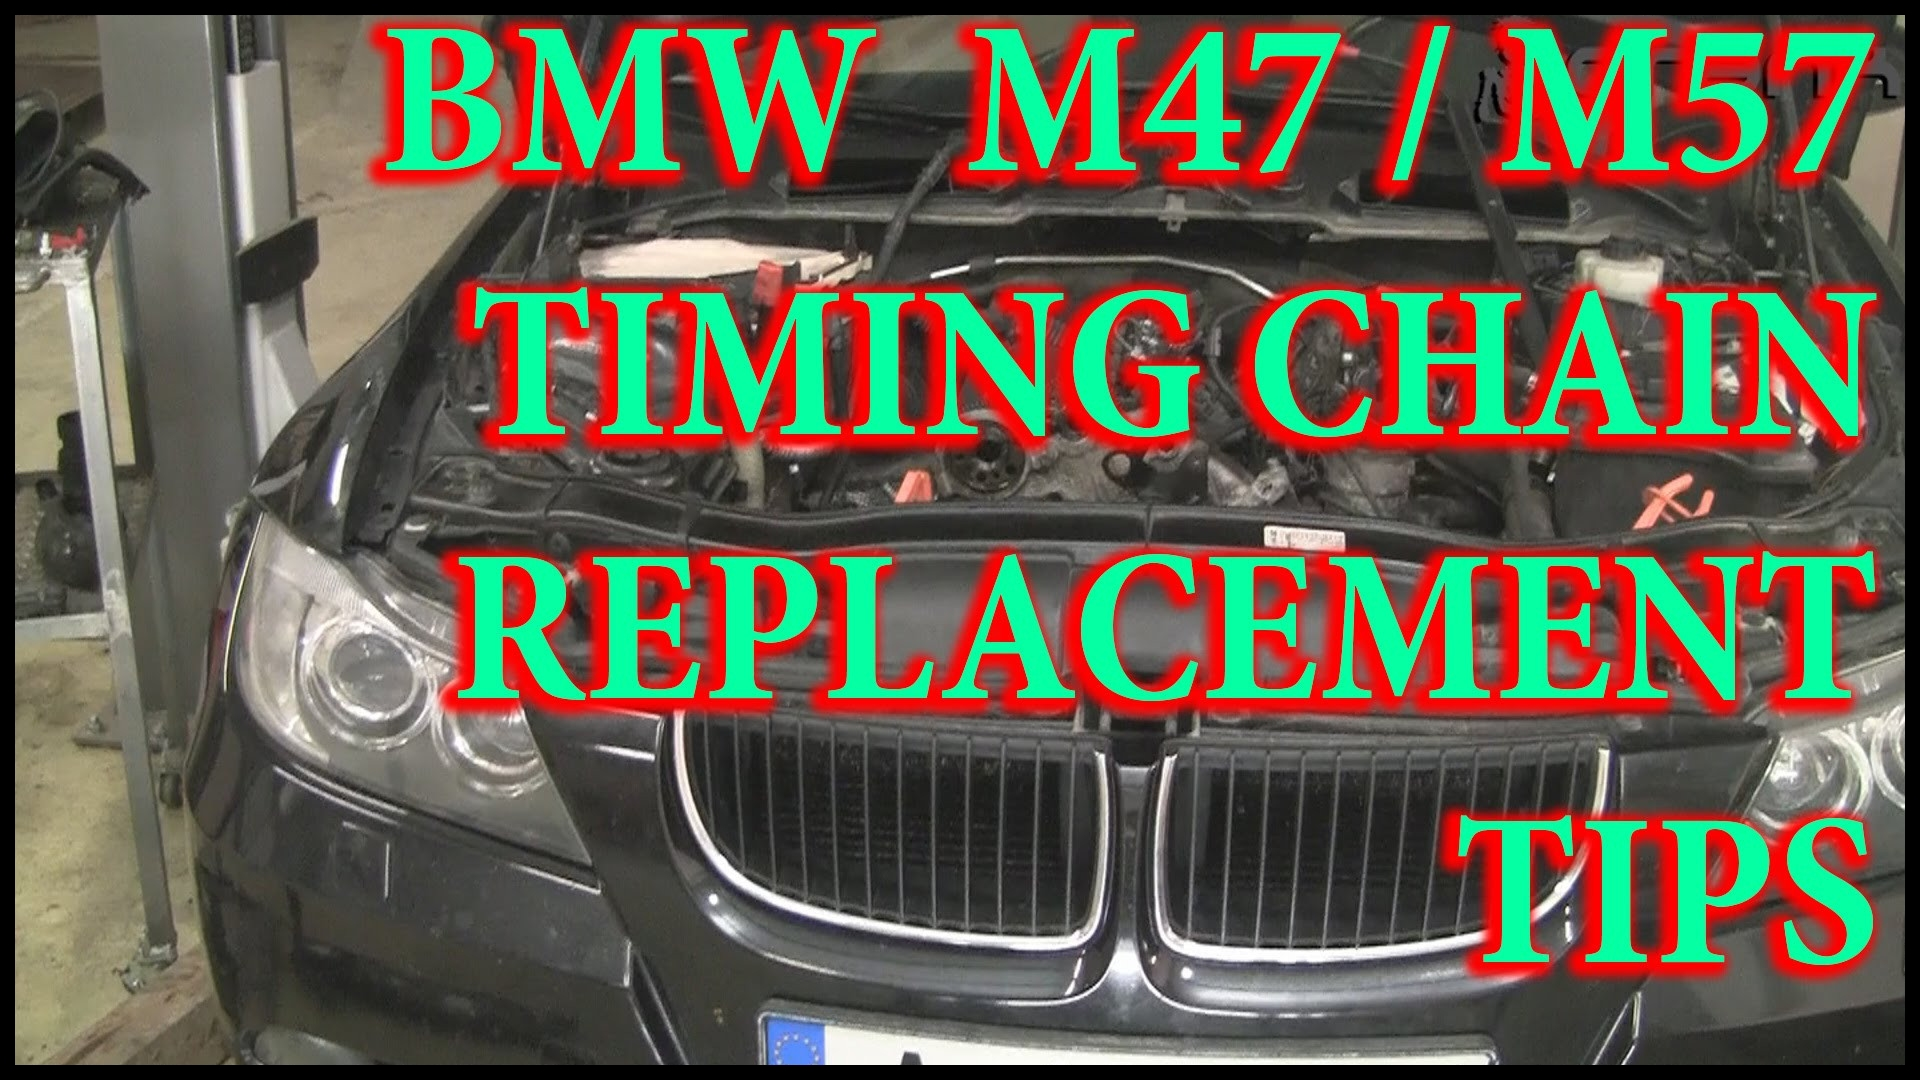 Bmw 5 Series Timing Belt or Chain Beautiful Bmw M47 M57 Timing Chain Replacement Tips